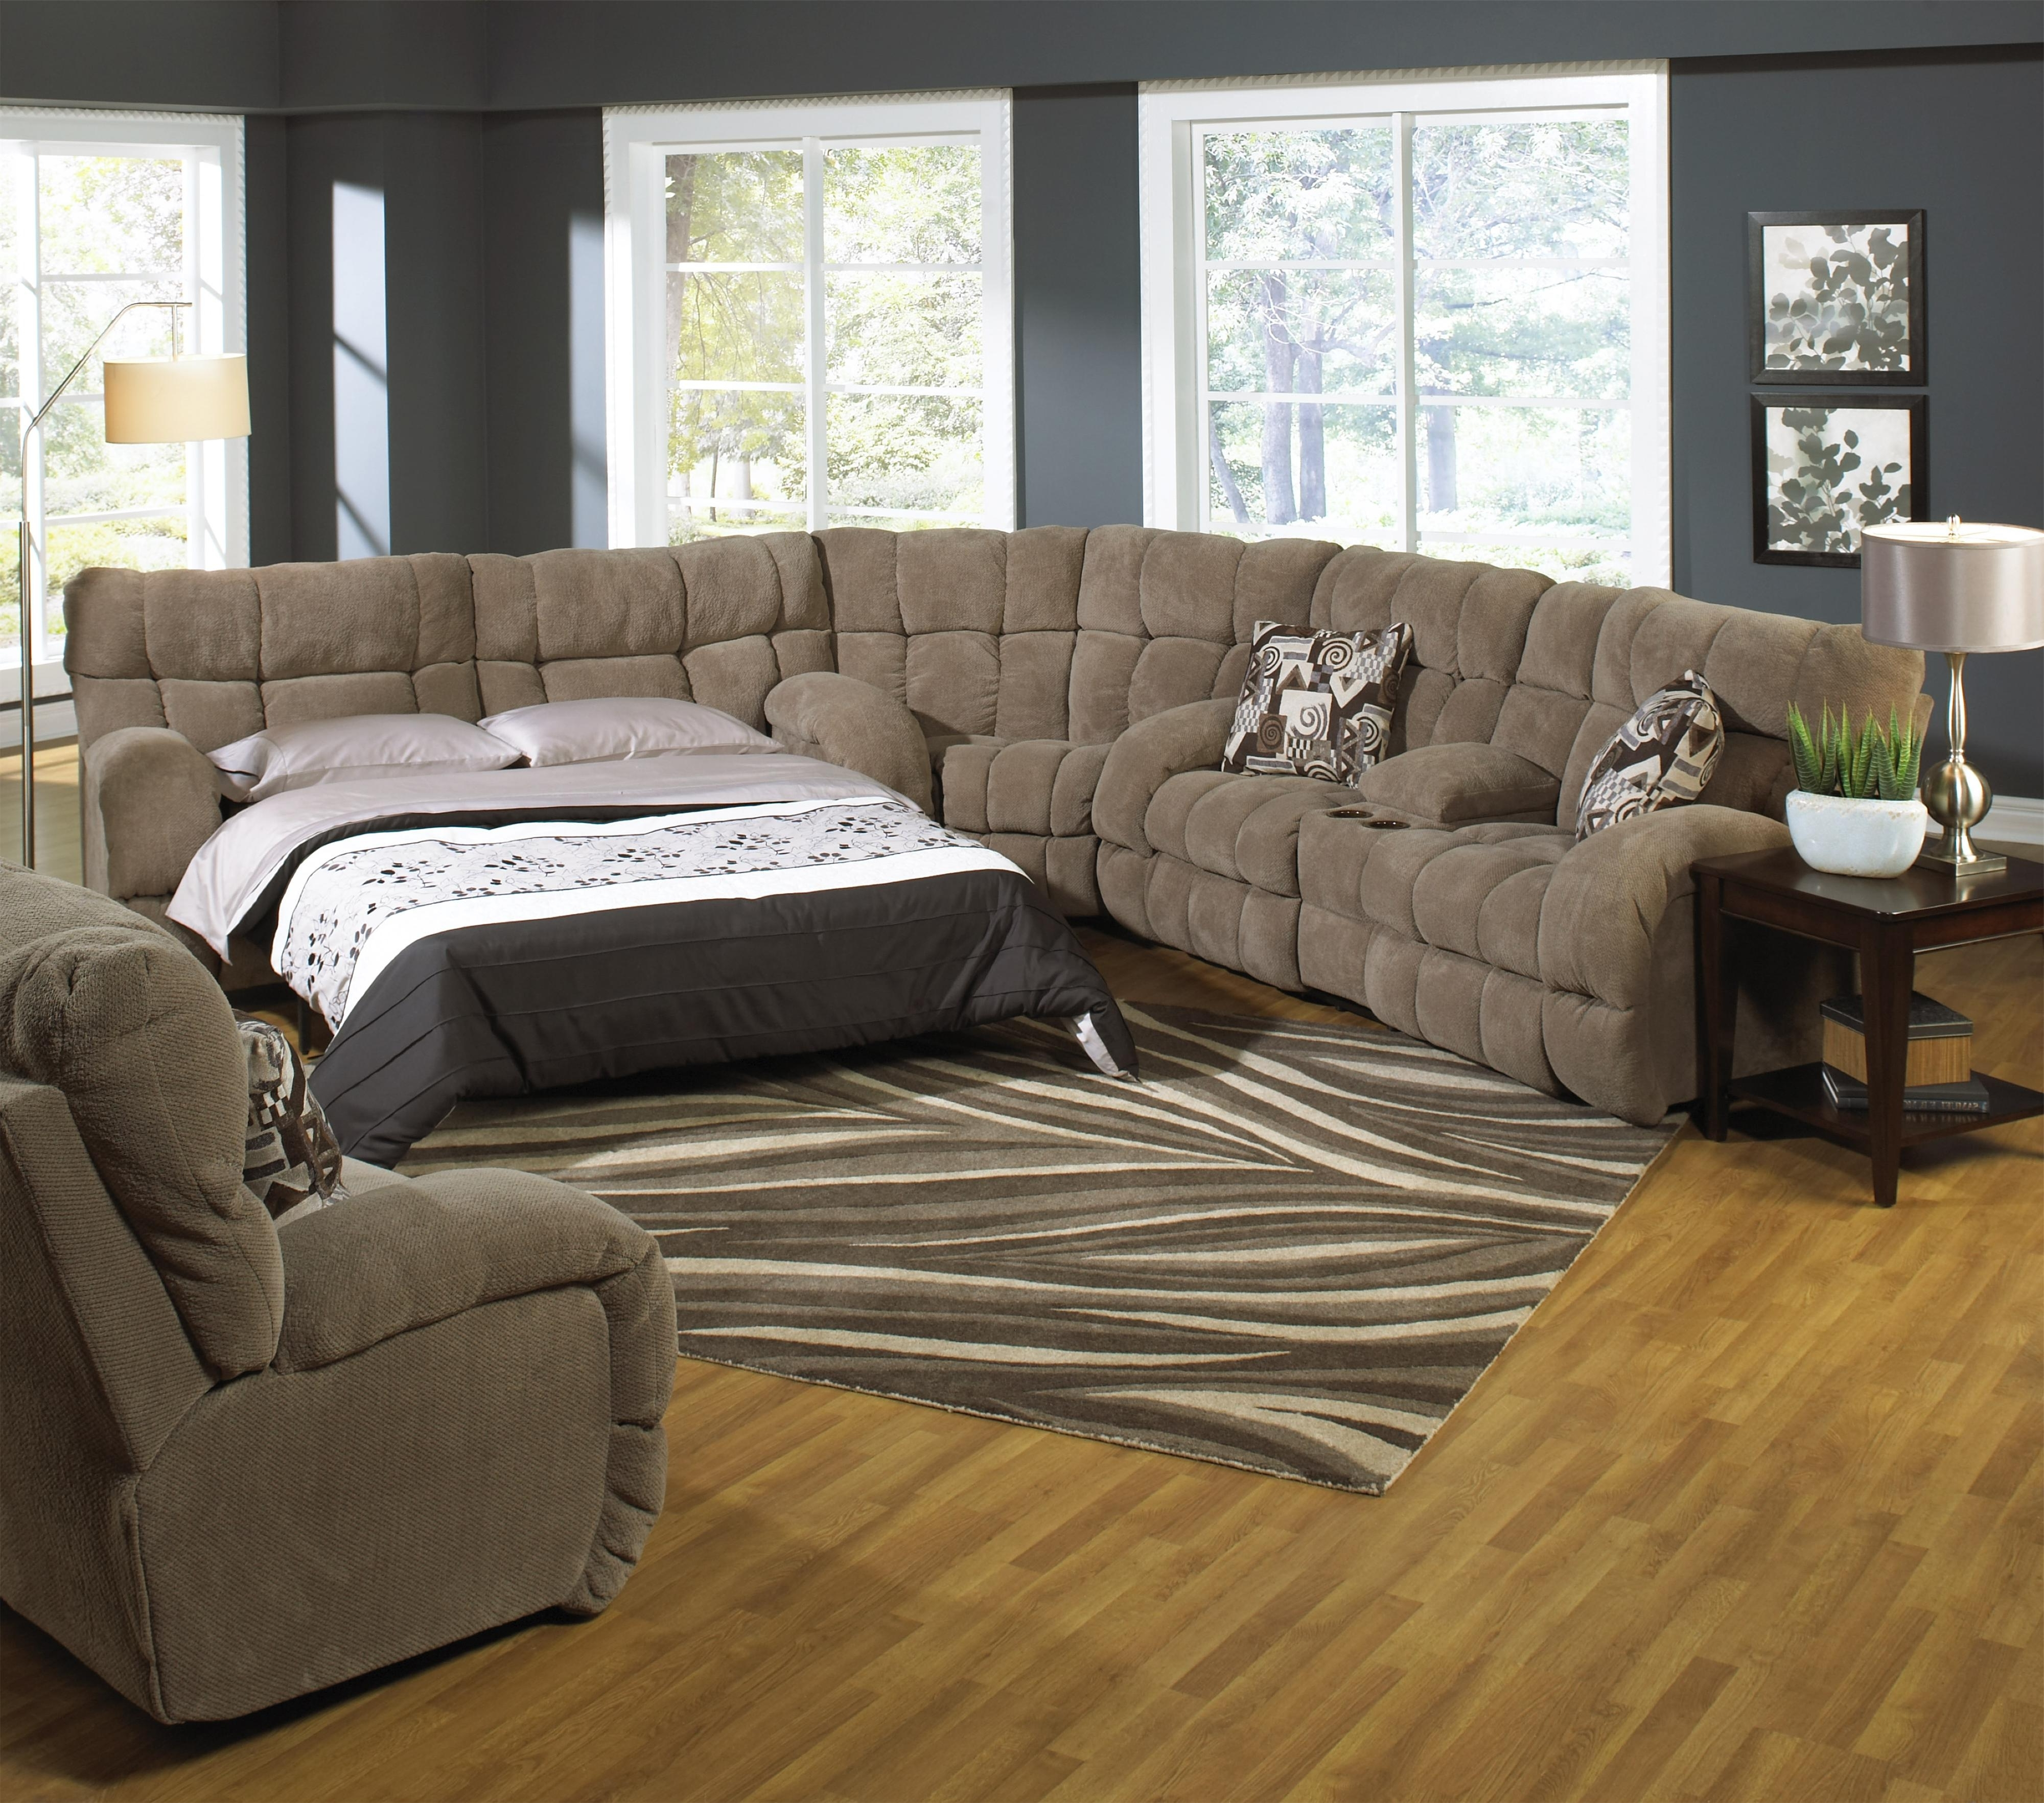 Reclining Sectional Sofa With Sofa Sleepercatnapper (View 17 of 20)